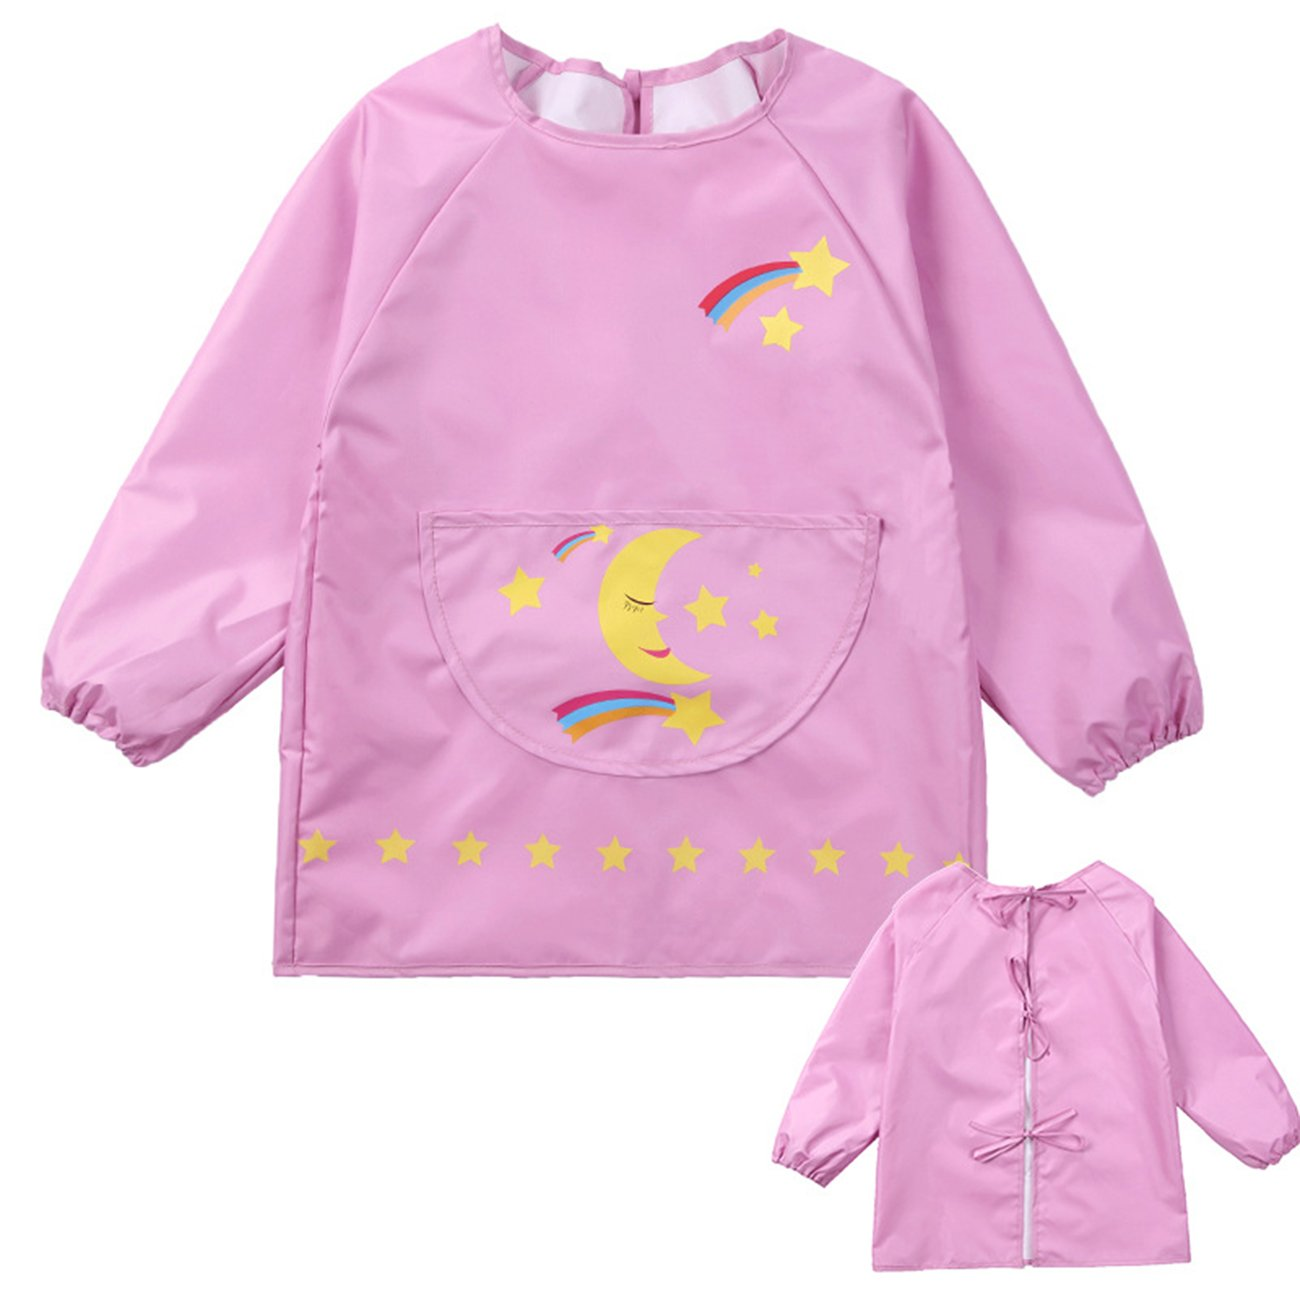 Lemonkid® Children's Waterproof Painting Clothing Fashion Cartoon Kids Protective Smock,Pink1,M/Height:100-115cm/fit 4-6T